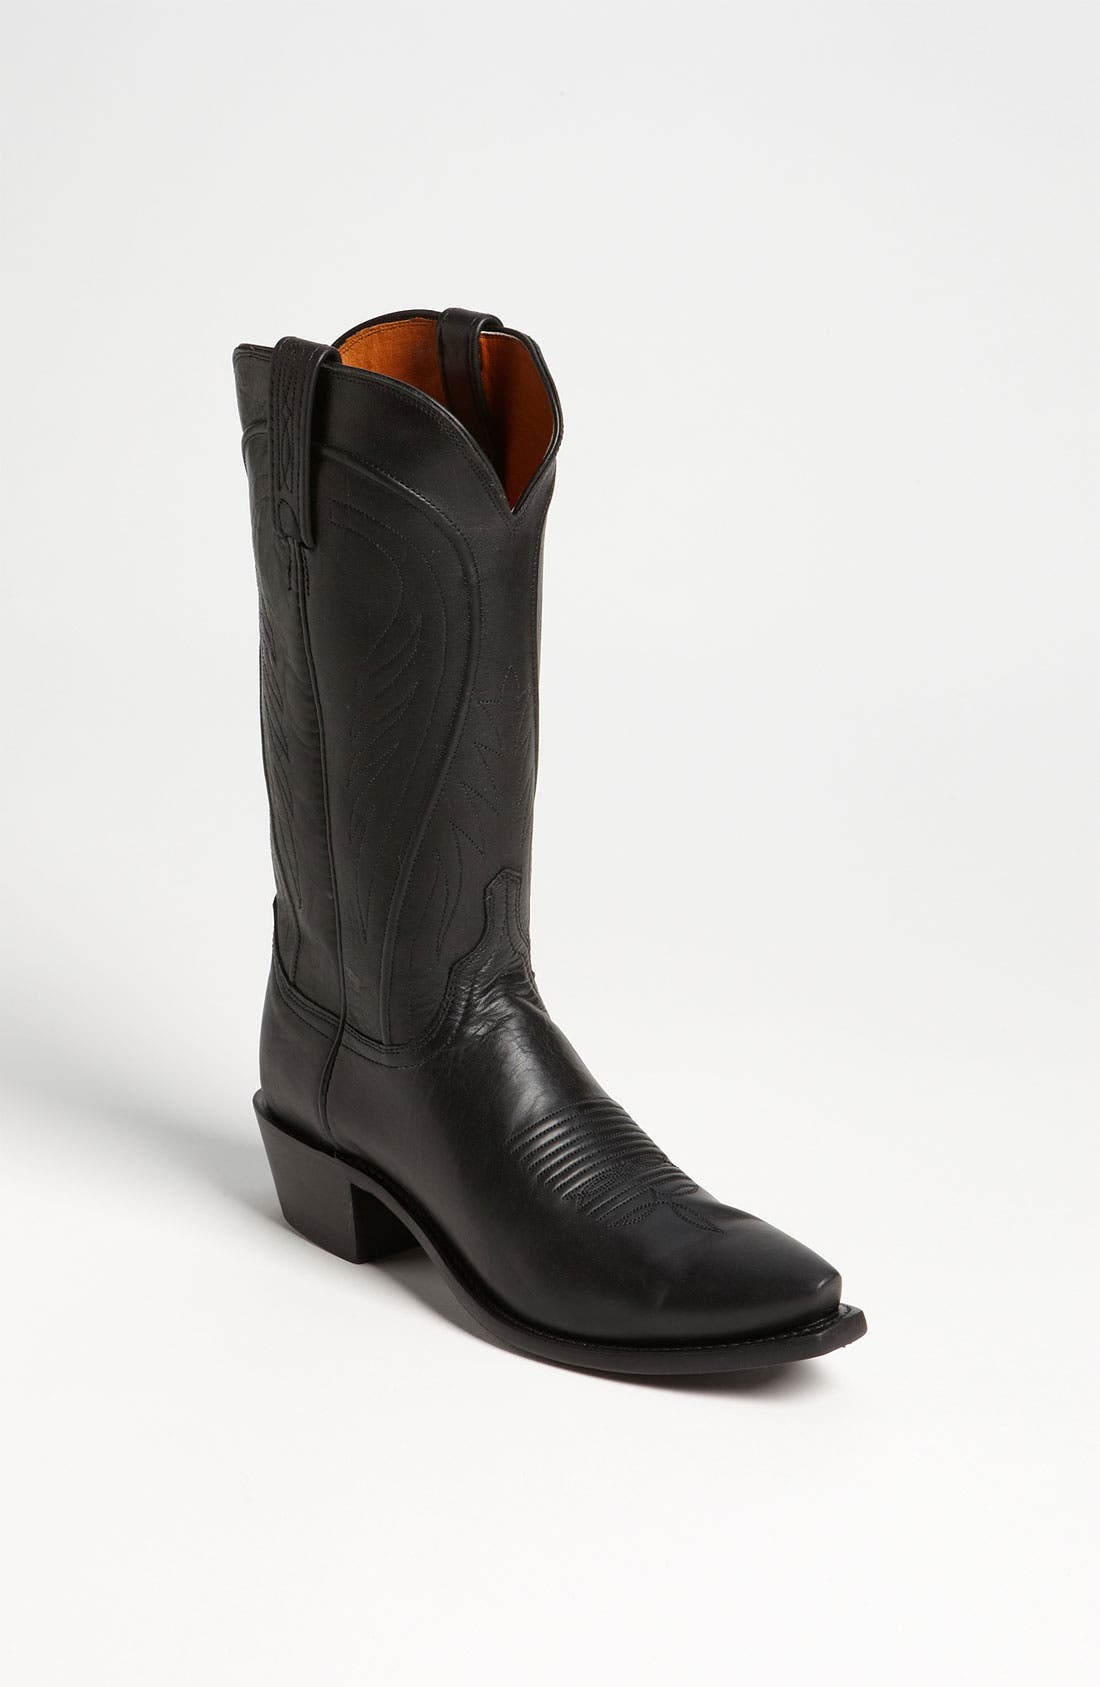 Alternate Image 1 Selected - Lucchese 'Seville' Boot